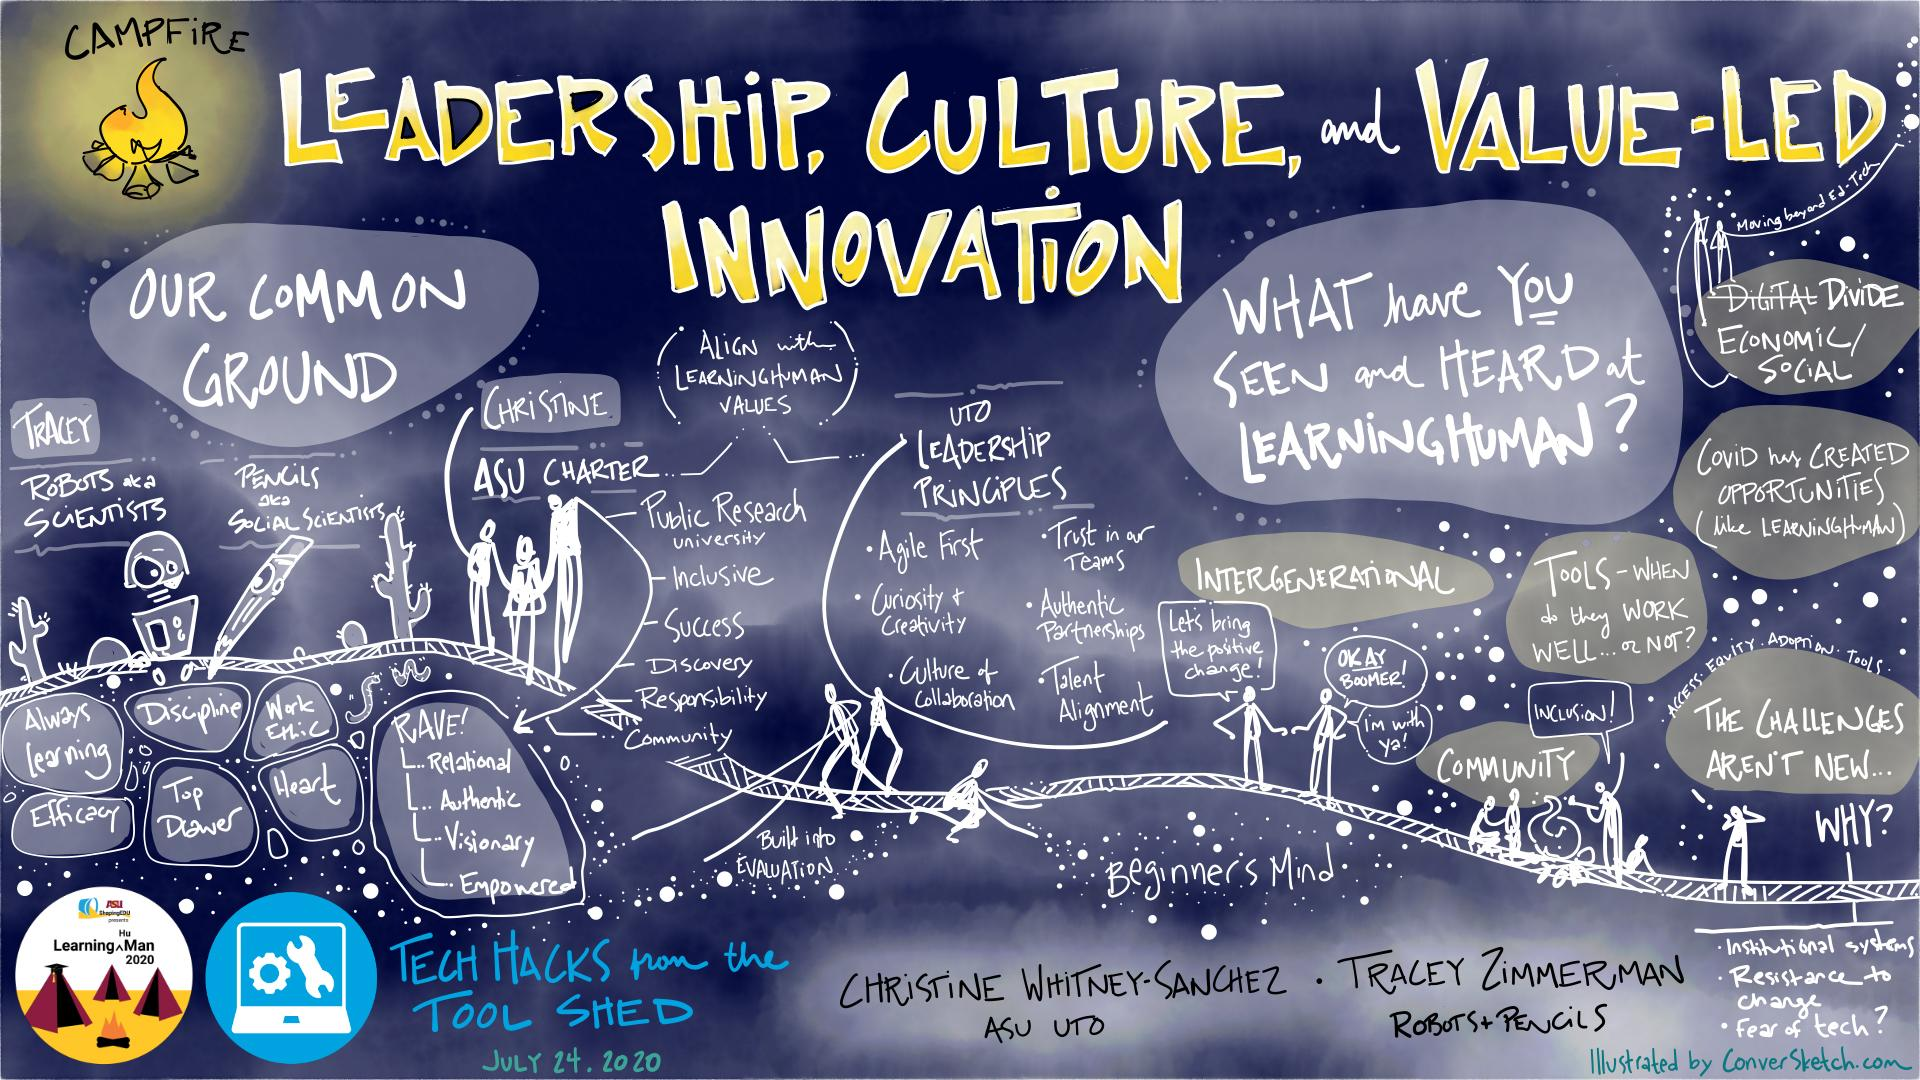 Sketch of themes from the session on Leadership, Culture and Value-Led Innovation